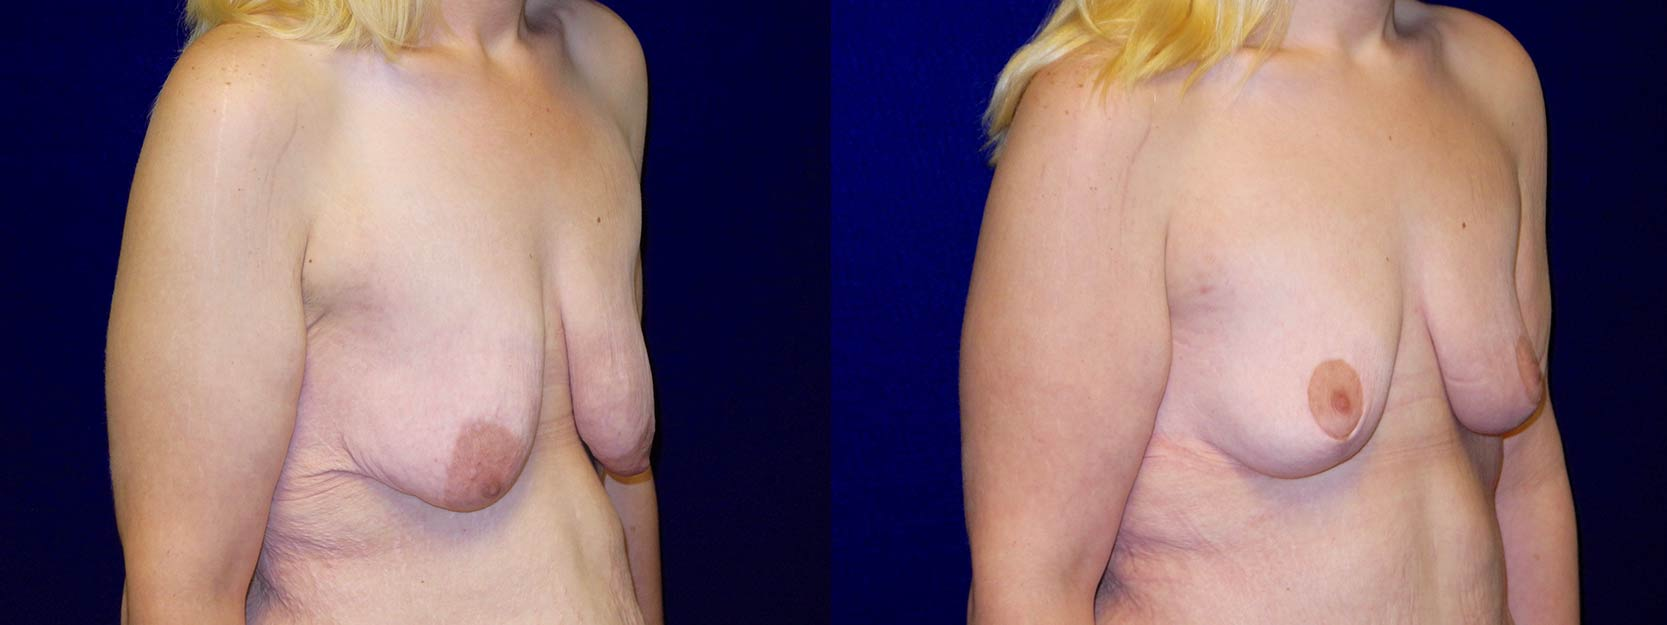 Right 3/4 View - Breast Lift After Weight Loss